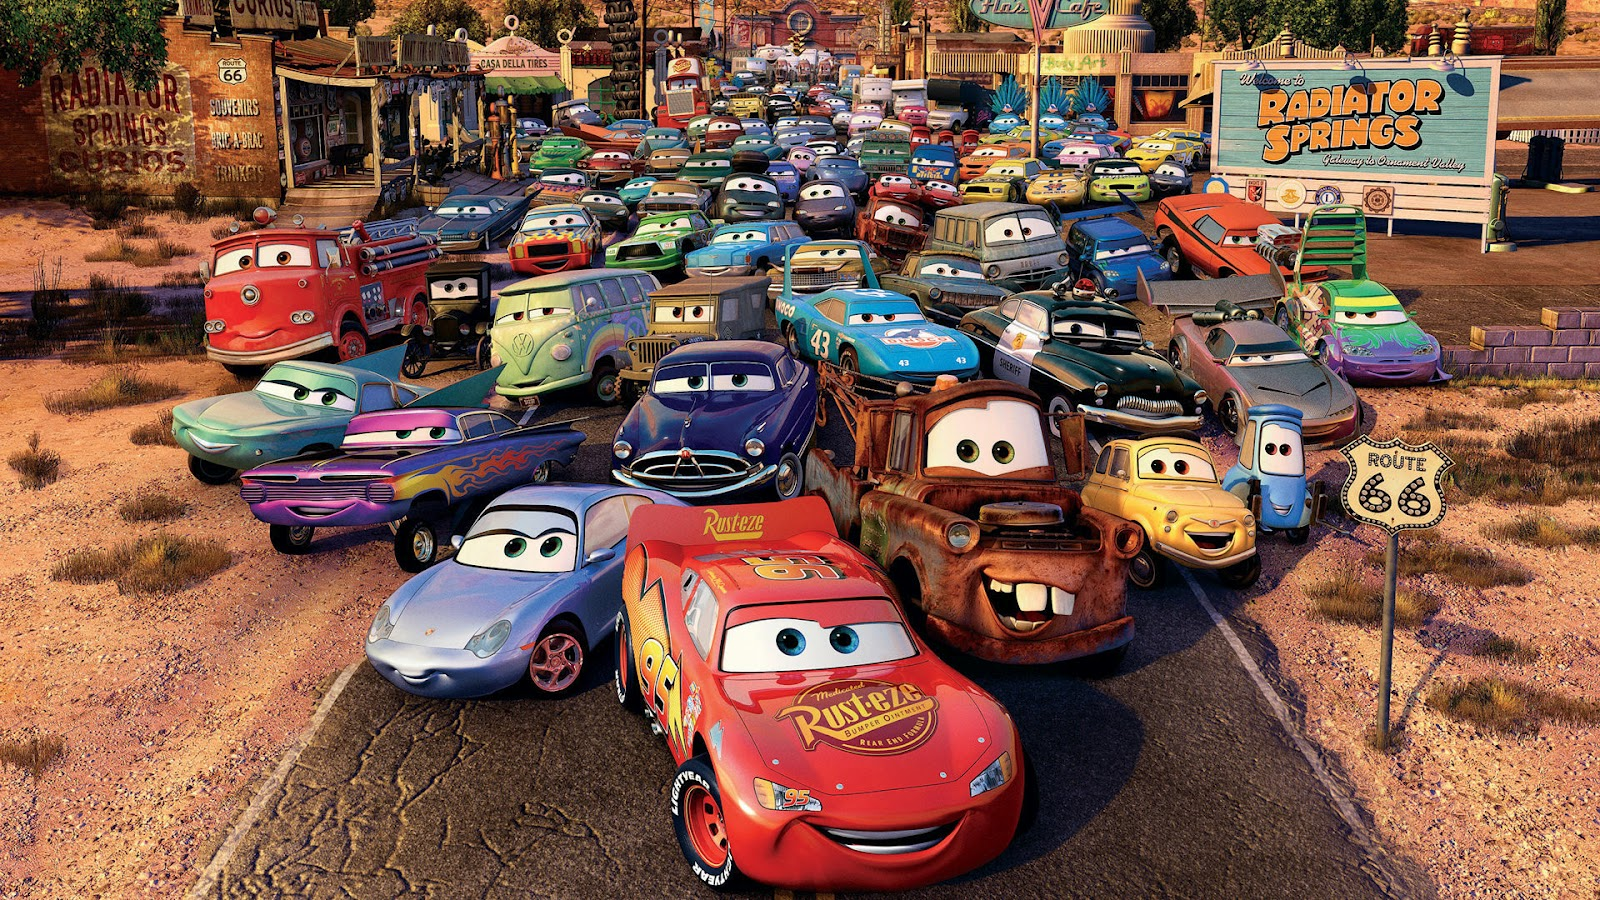 http://2.bp.blogspot.com/-2i687-ydz60/UBZMIJQlABI/AAAAAAAAHNM/a9w9R-tUV8M/s1600/Cars-2-Wallpaper-HD-cartoon-route-66.jpg